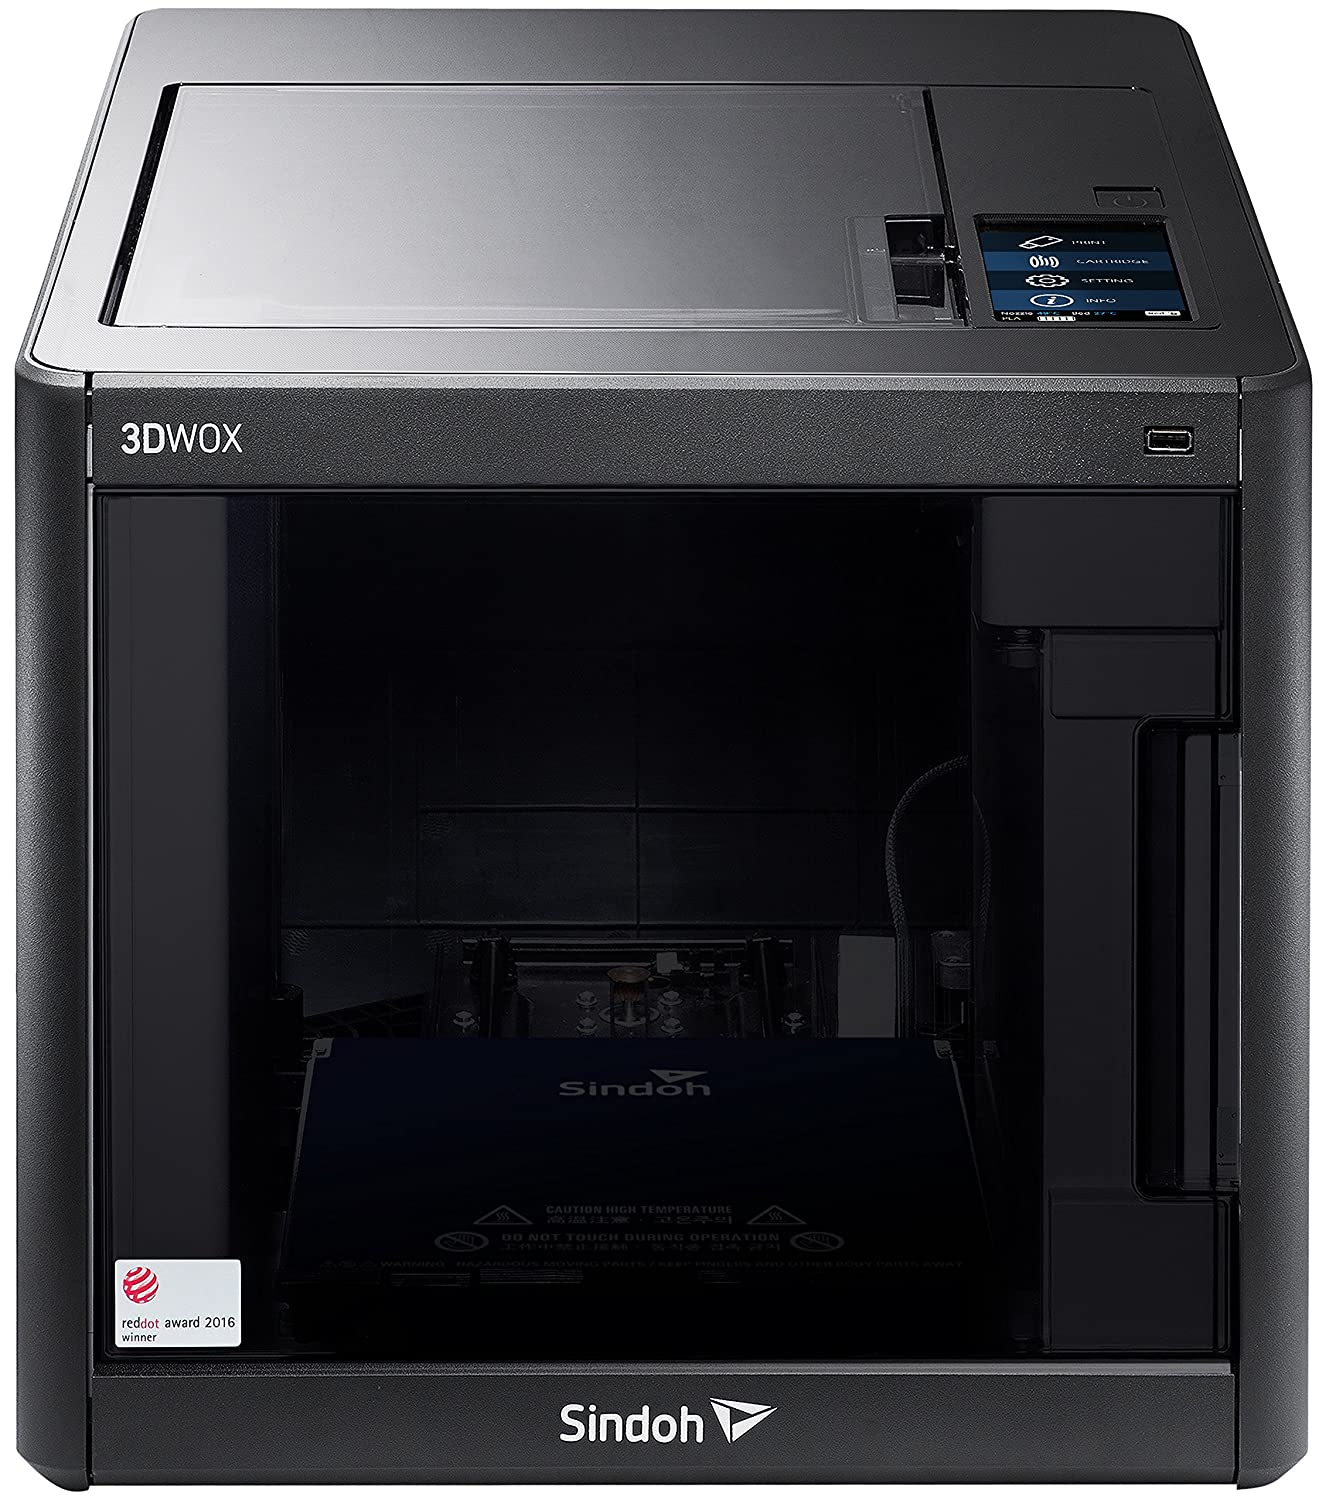 Top 10 Best 3D Printers For Kids (2020 Reviews & Buying Guide) 1